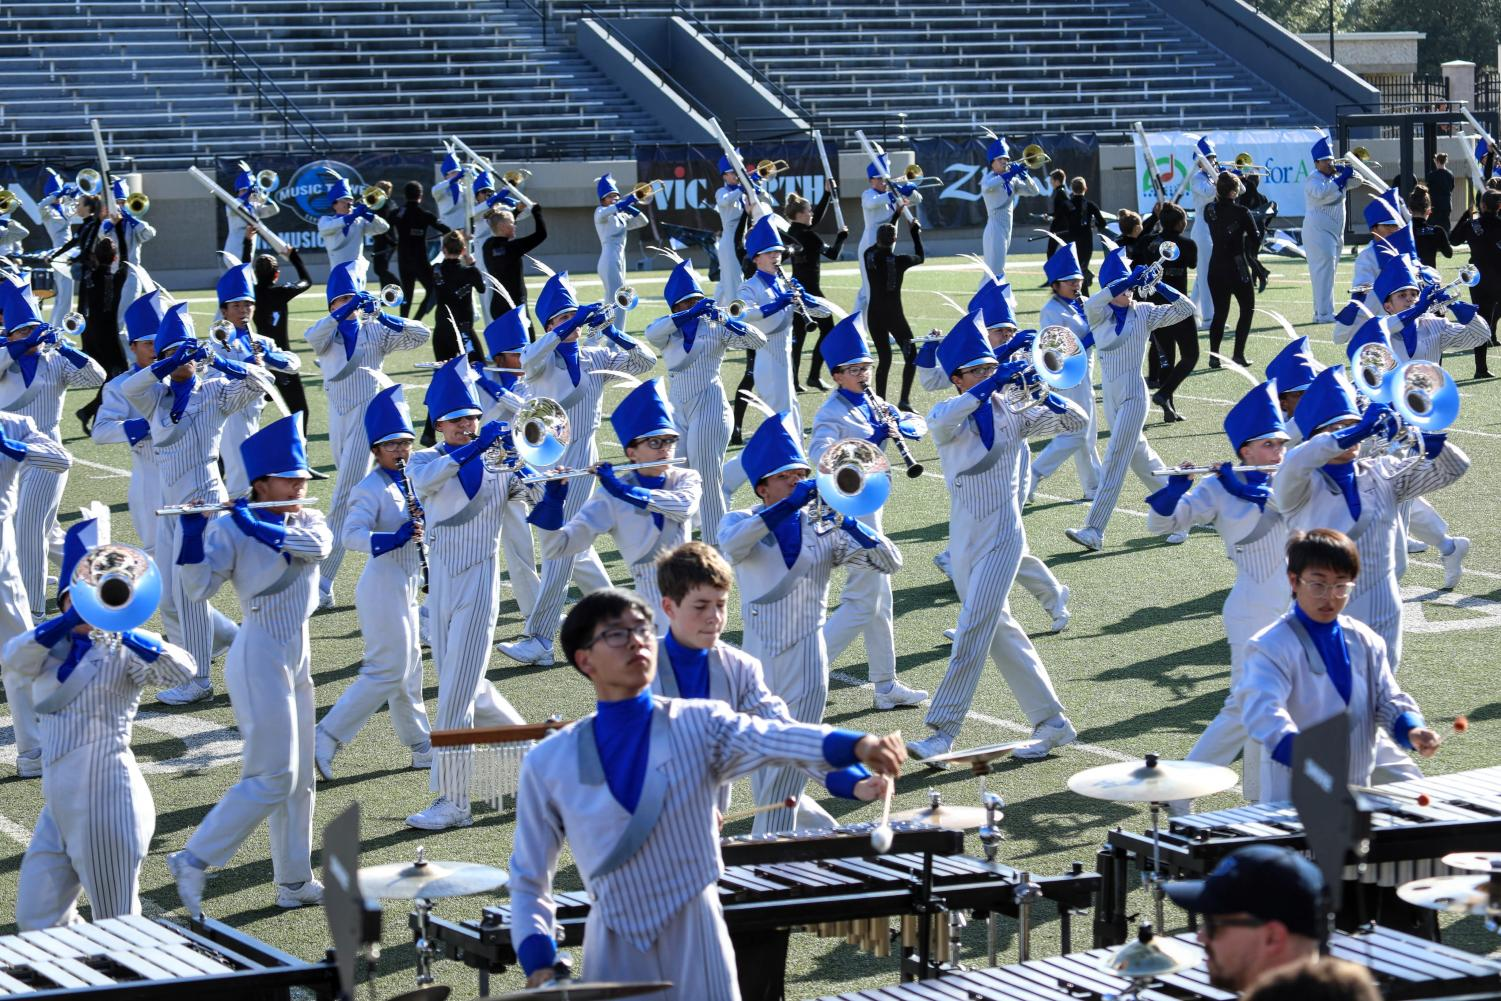 The band performs at the Bands of America Regional competition on Oct. 6. They placed second in prelims, but the competition's finals was cancelled due to weather.